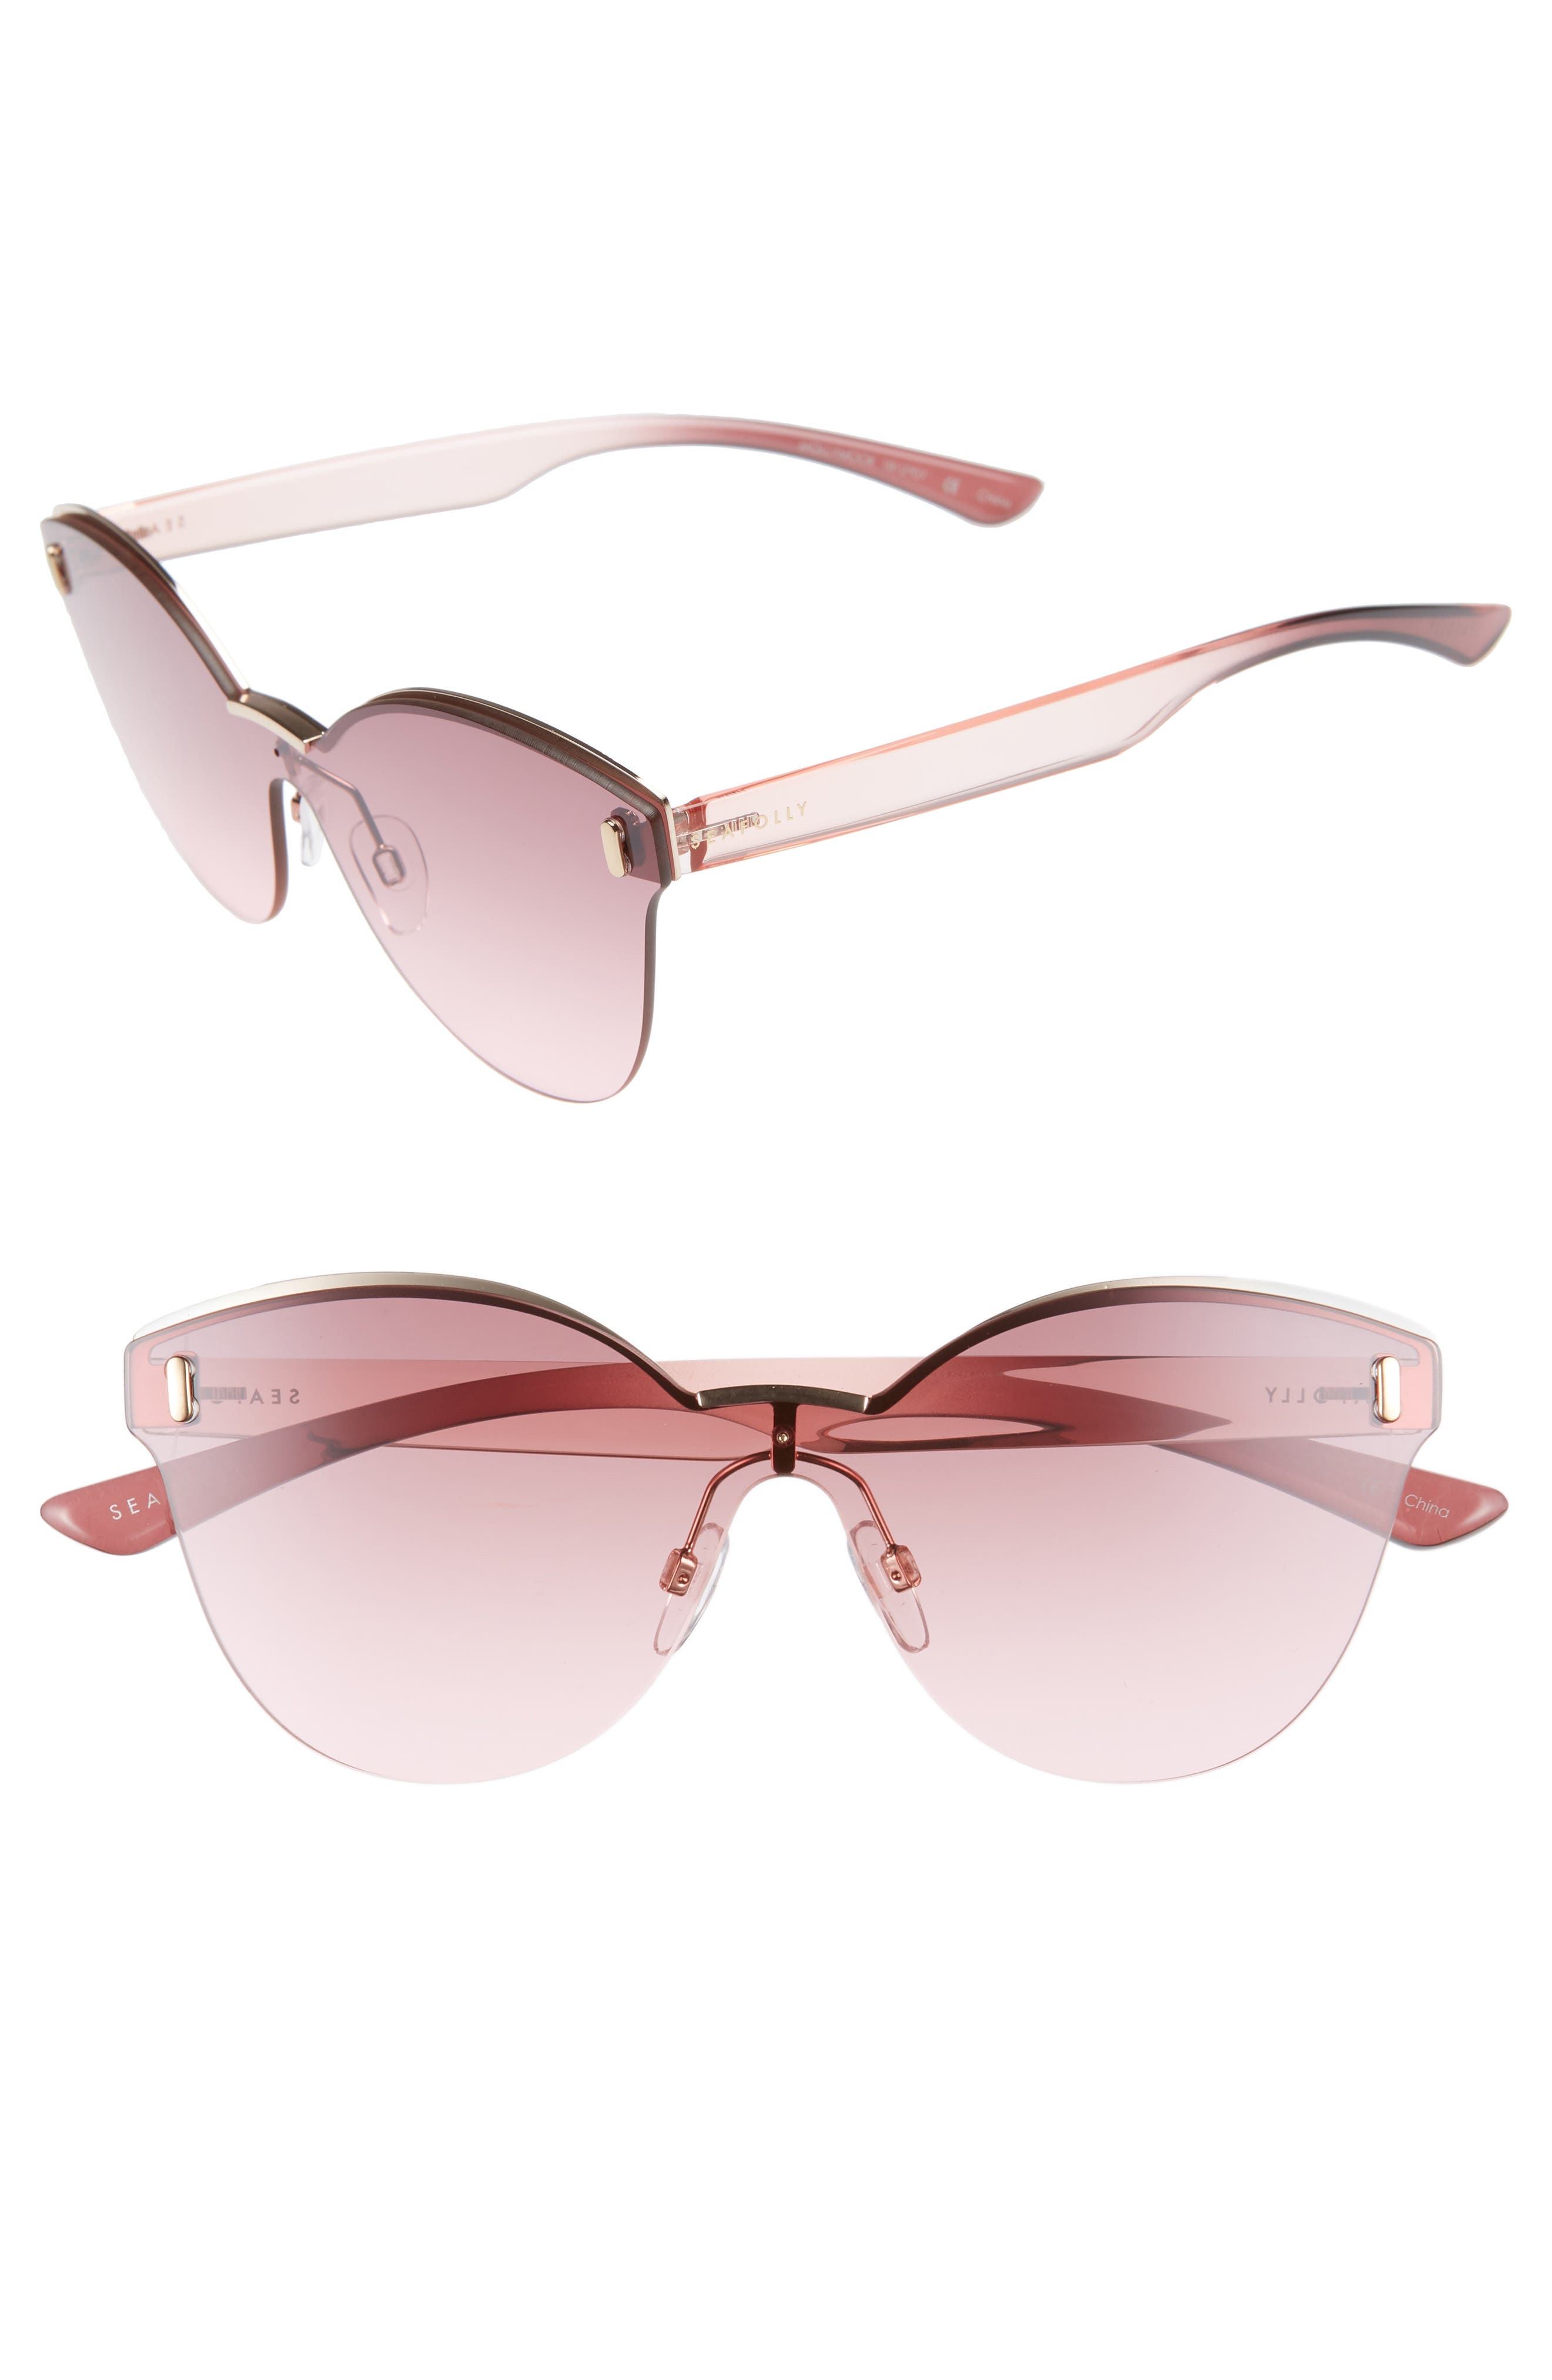 SEAFOLLY MOLLYMOCK 66MM CAT EYE SUNGLASSES - PLUM/ ROSE